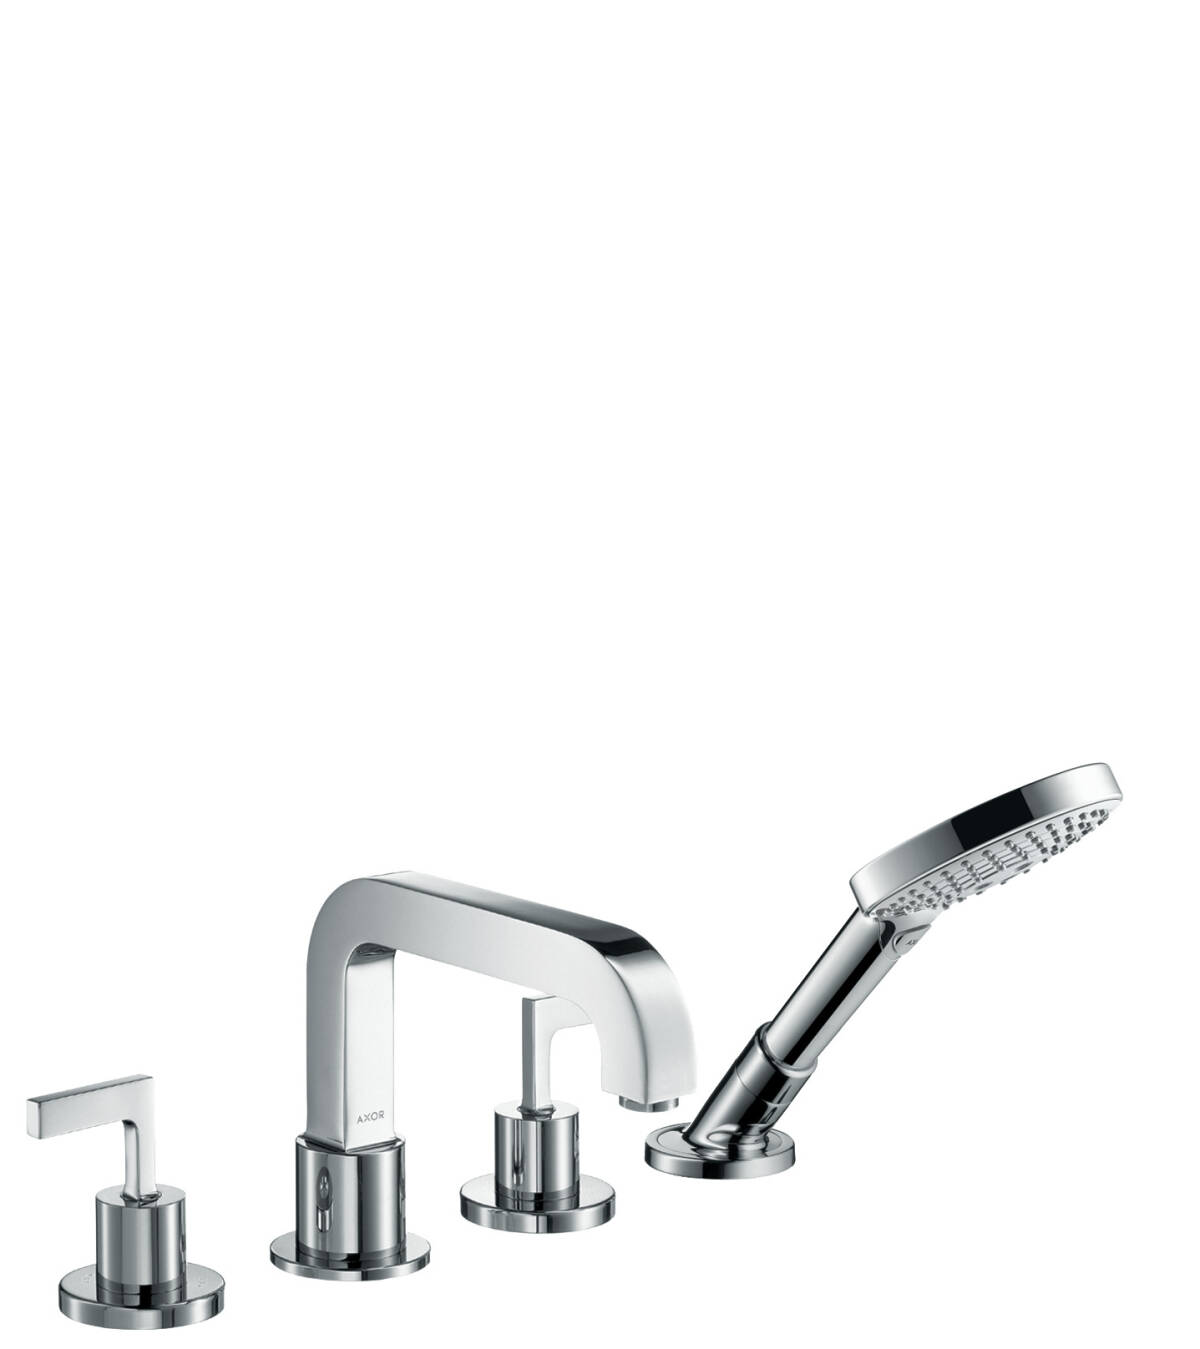 4-hole rim mounted bath mixer with lever handles and escutcheons, Polished Black Chrome, 39454330